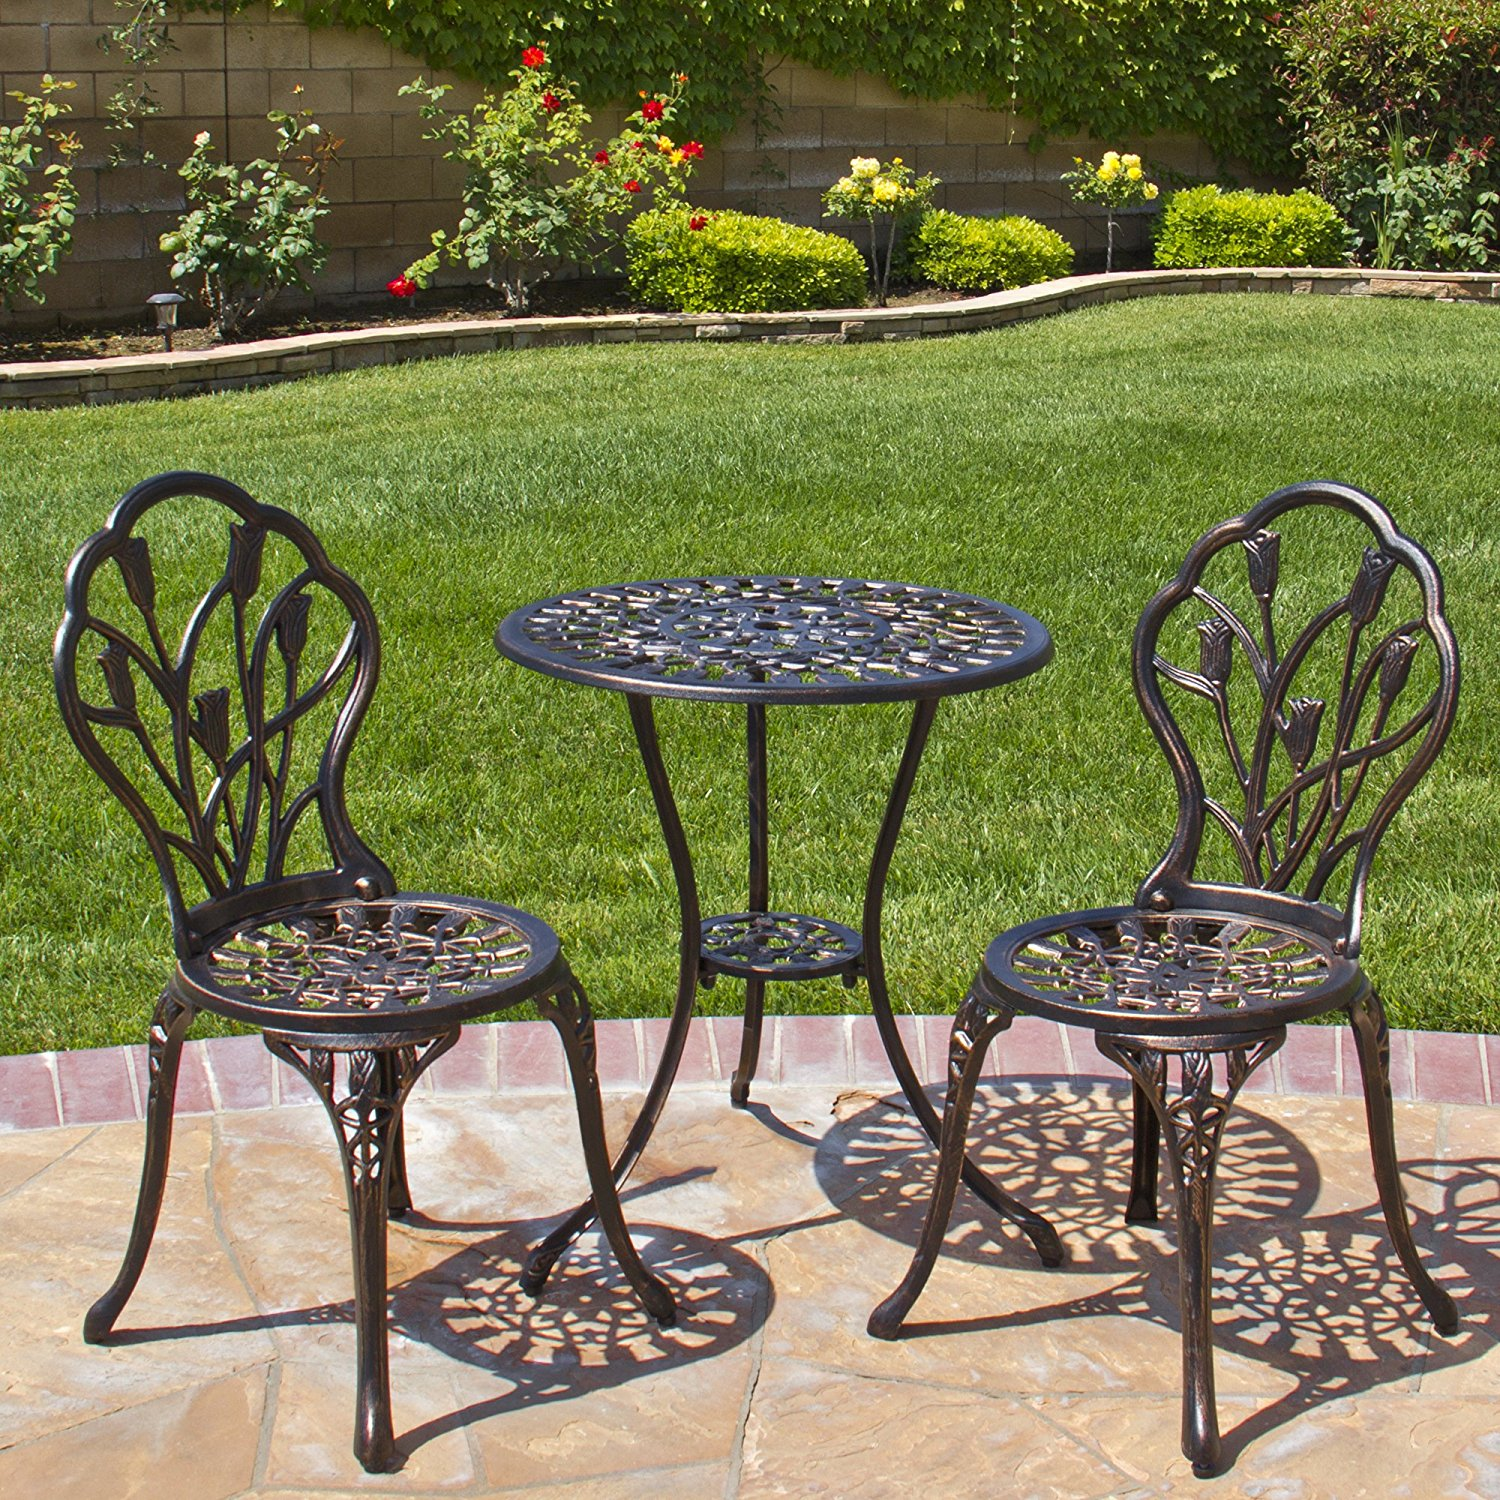 lawn furniture amazon.com: best choice products outdoor patio furniture tulip design cast TEAHJNI